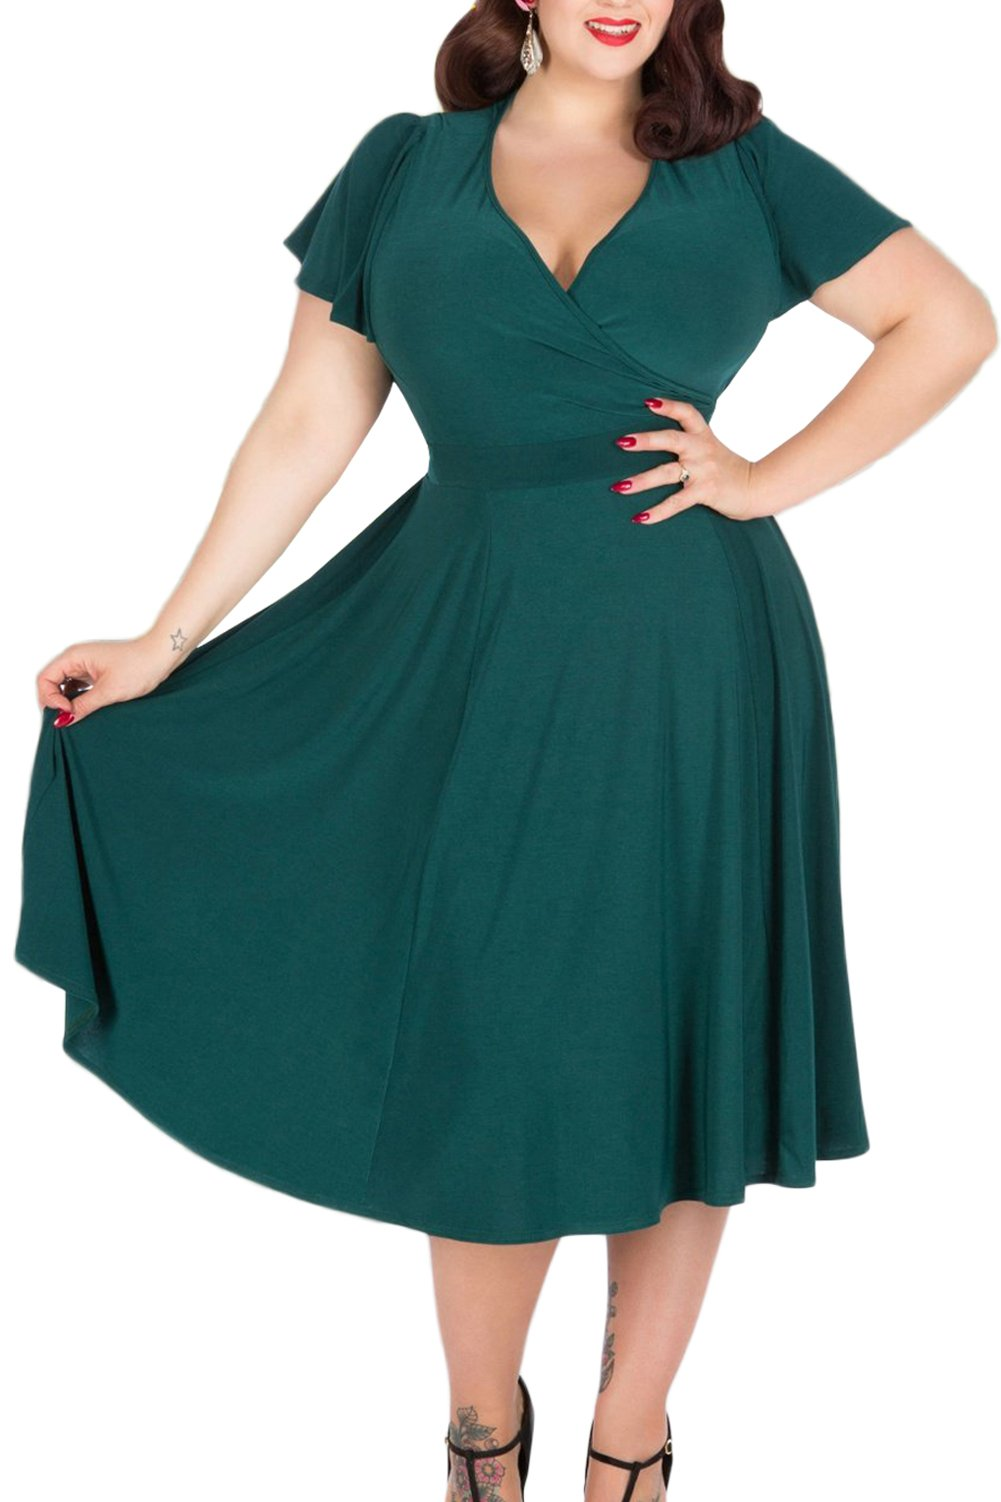 Plus Size Bridesmaid Dresses: Amazon.co.uk